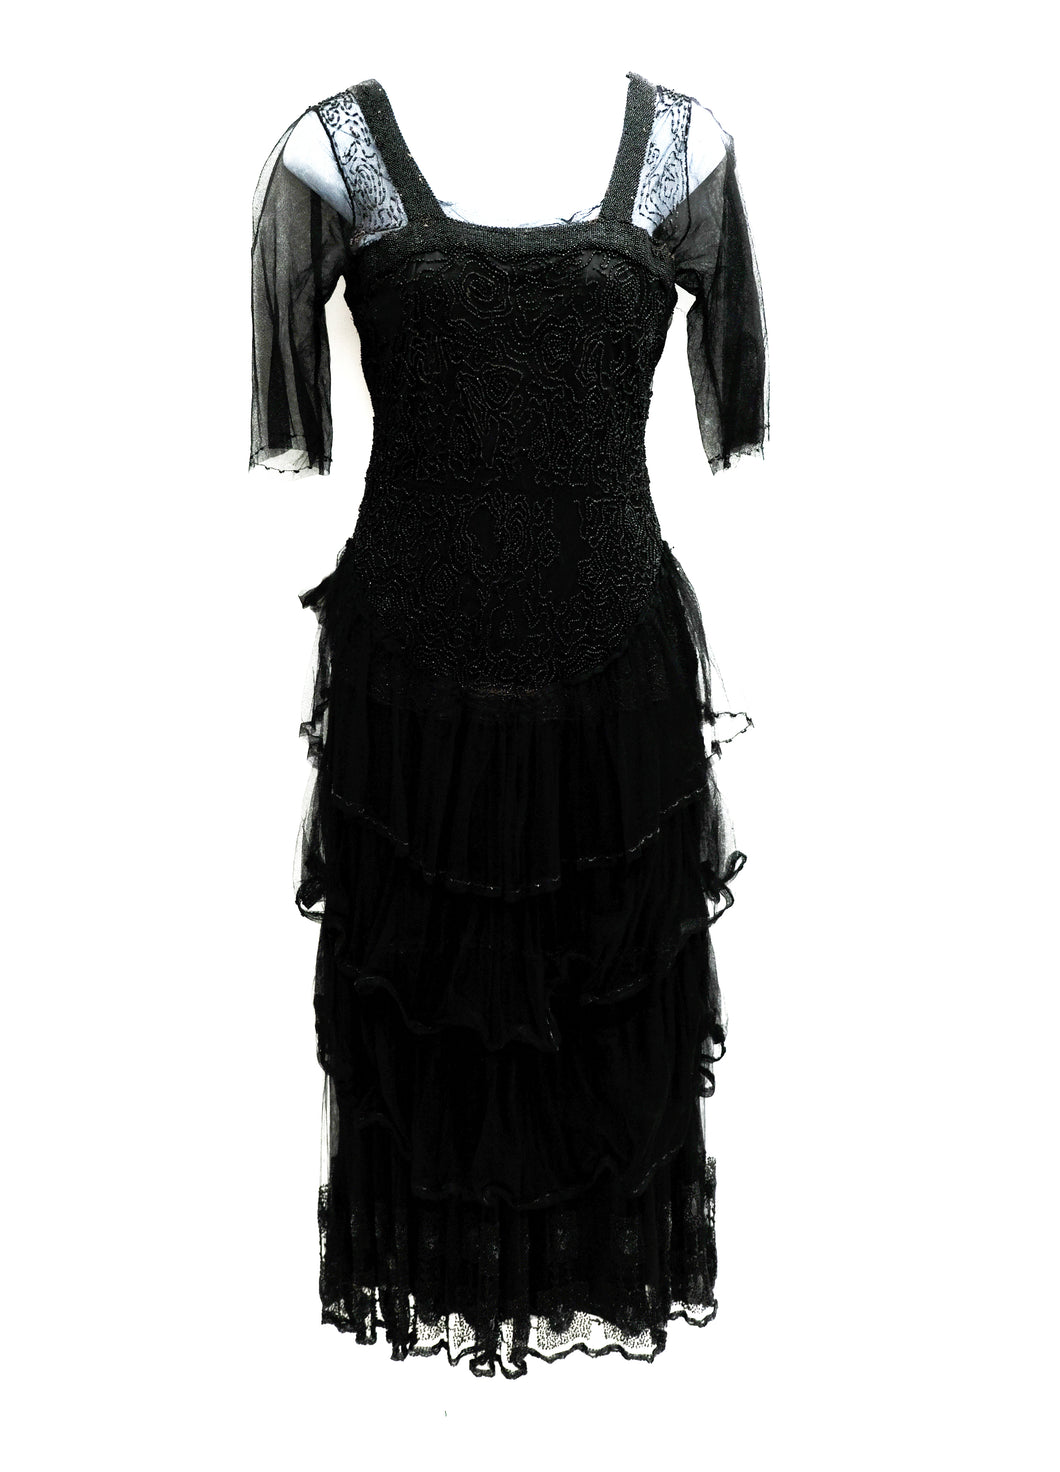 Antique Beaded Evening Dress in Black Tulle, XXS